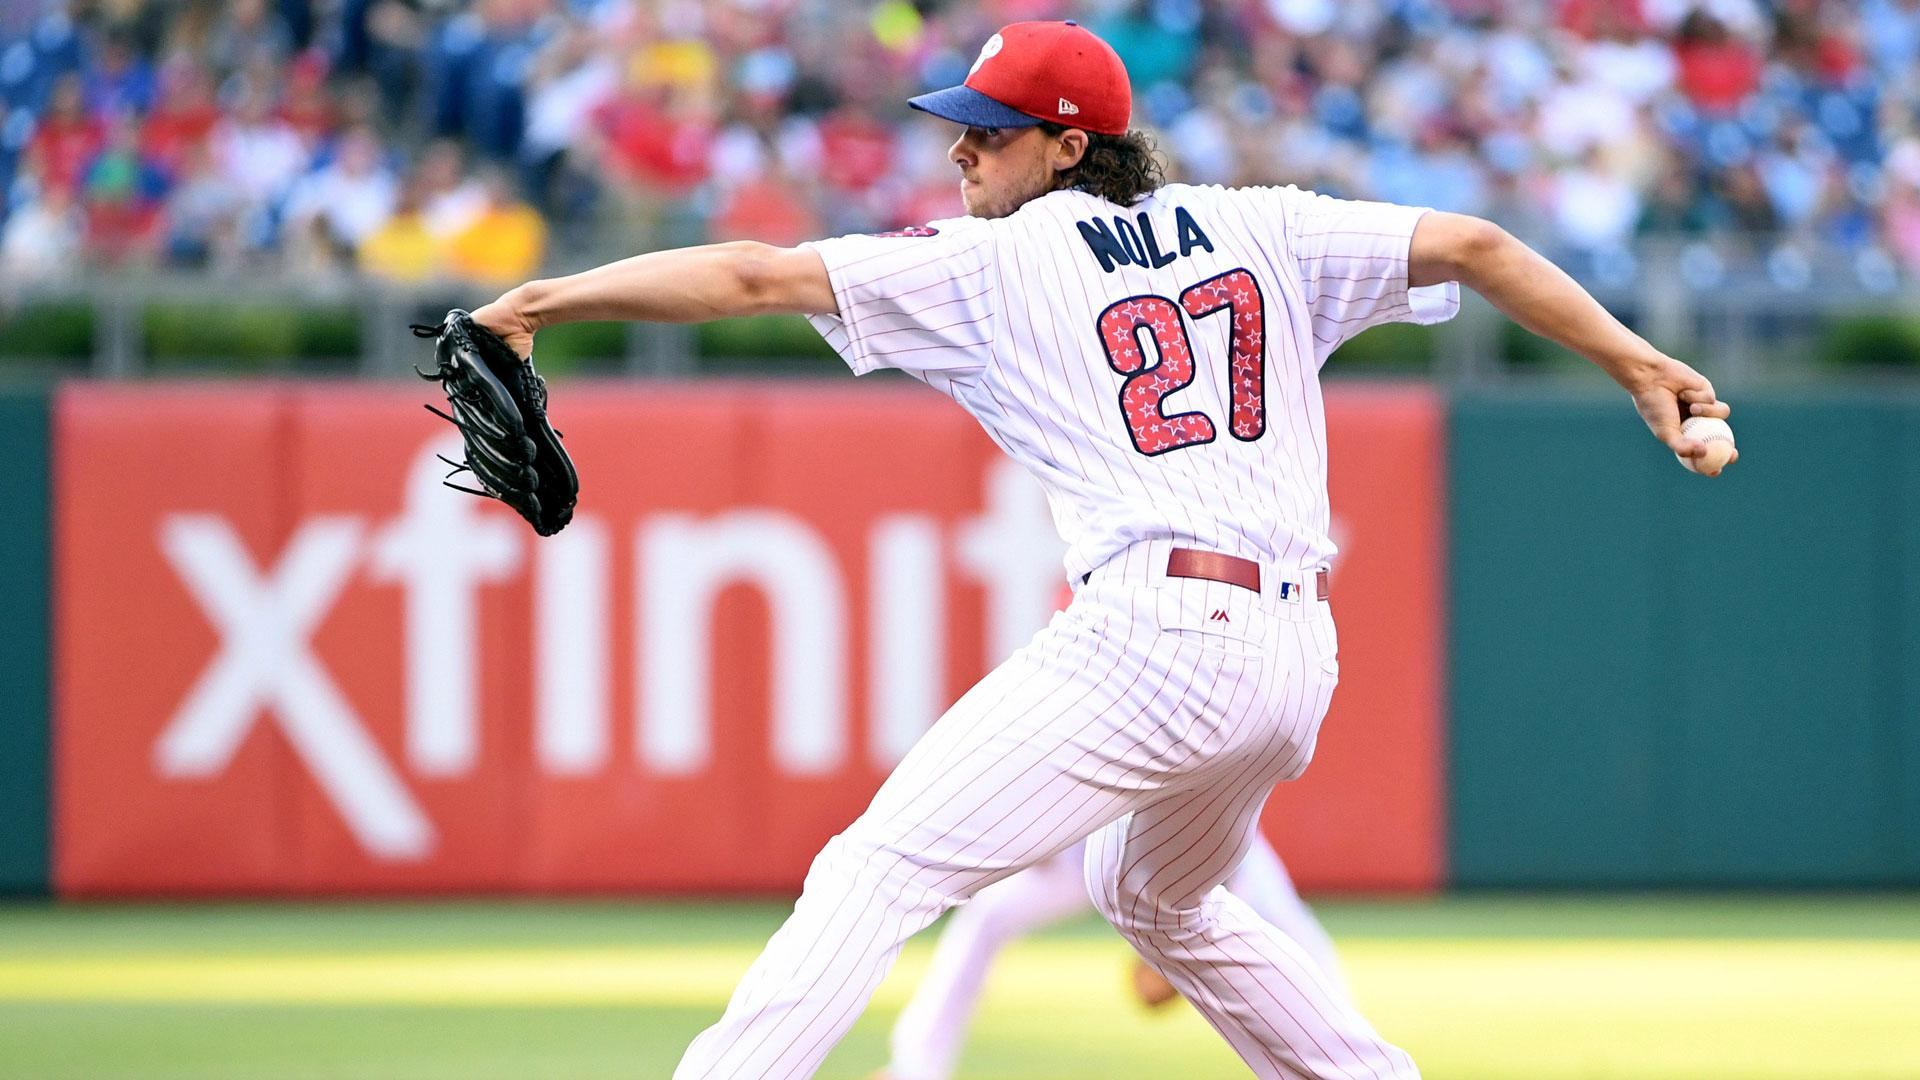 Ben Davis: Aaron Nola 'was able to execute with all 3 pitches' | NBC ...